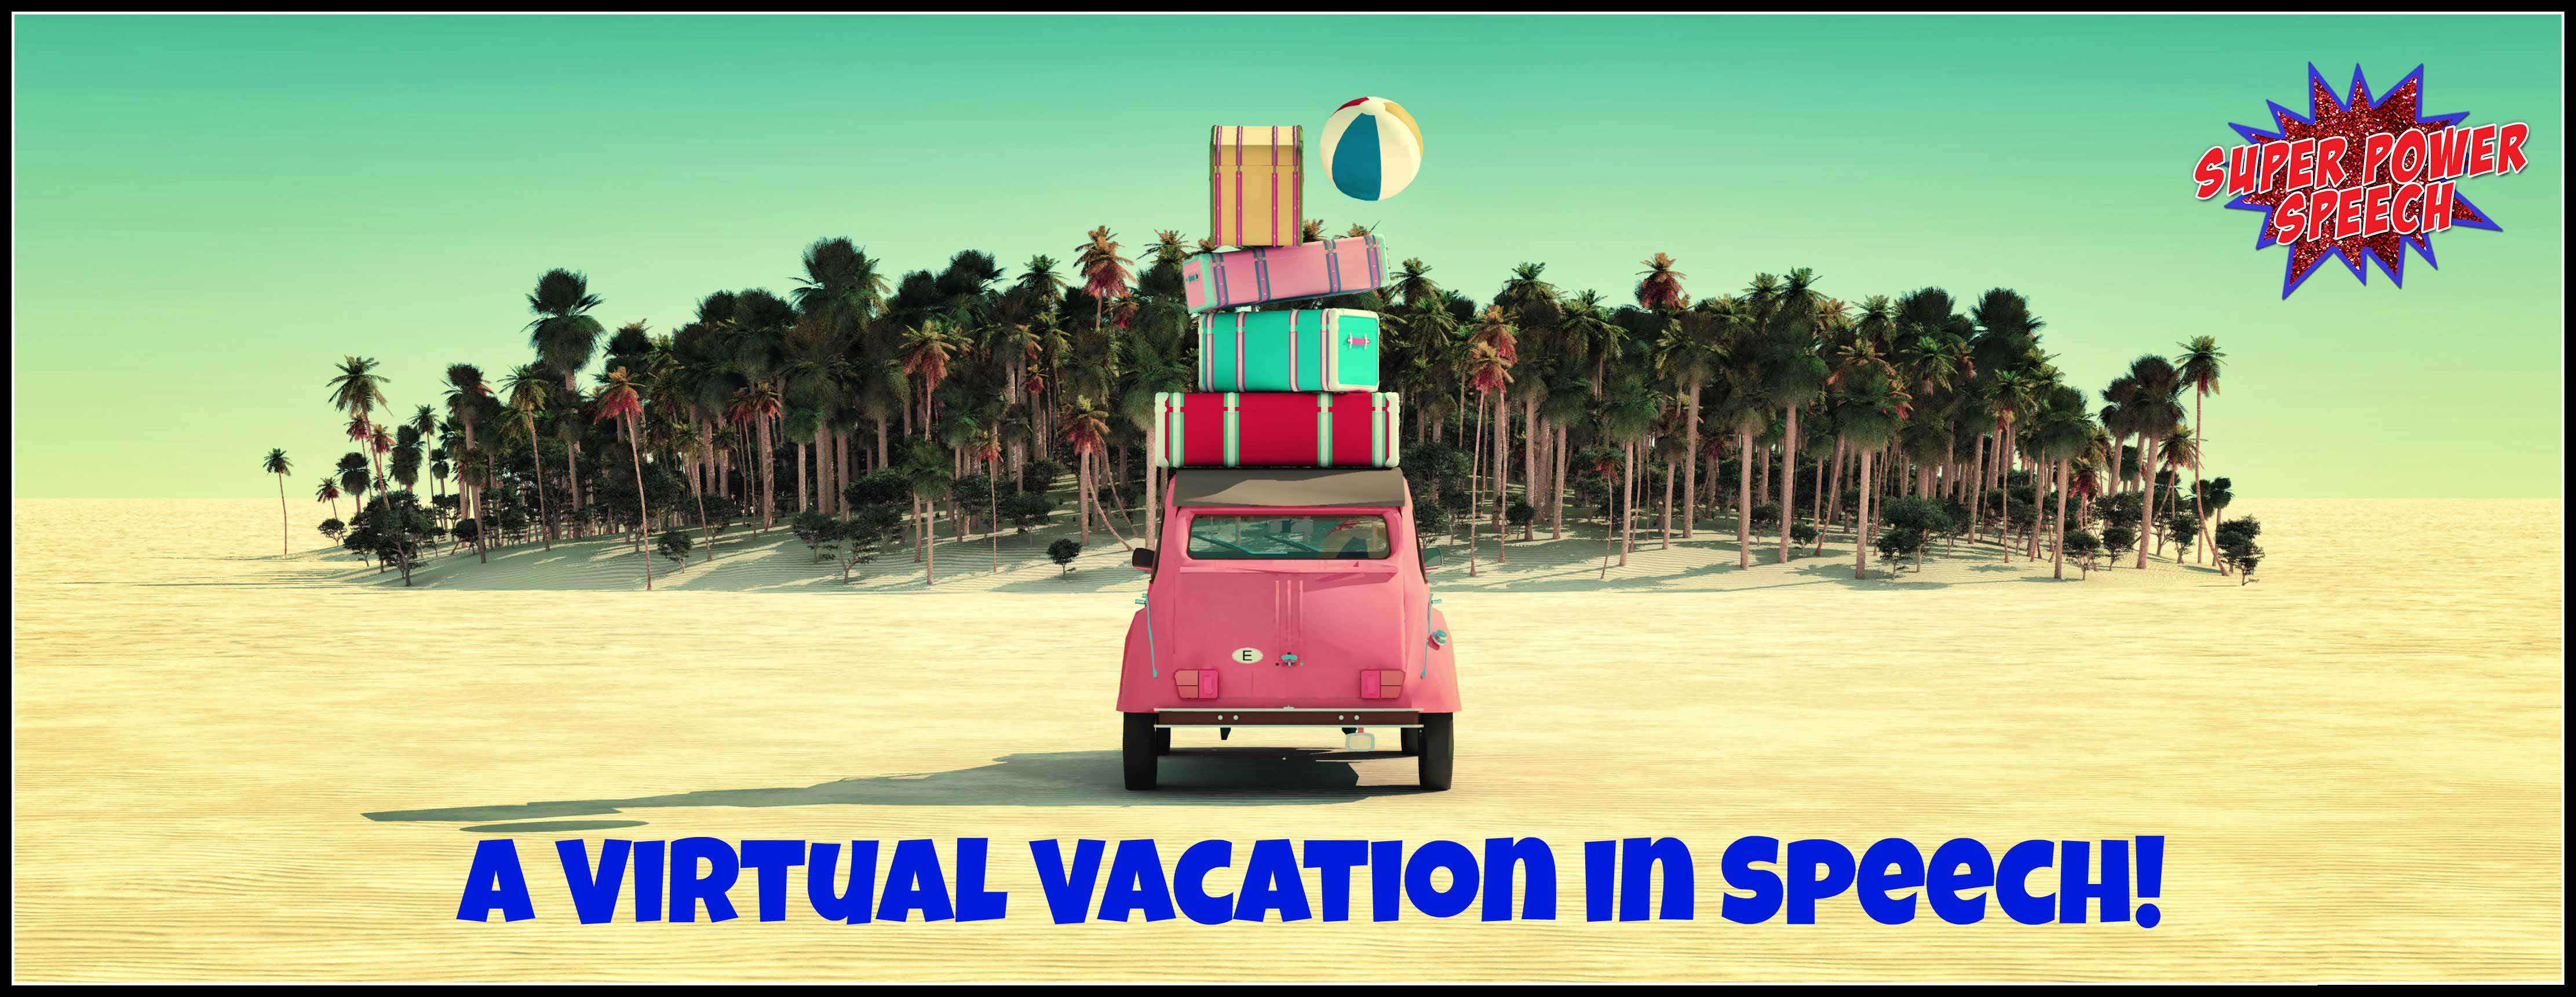 A Virtual Vacation in Speech